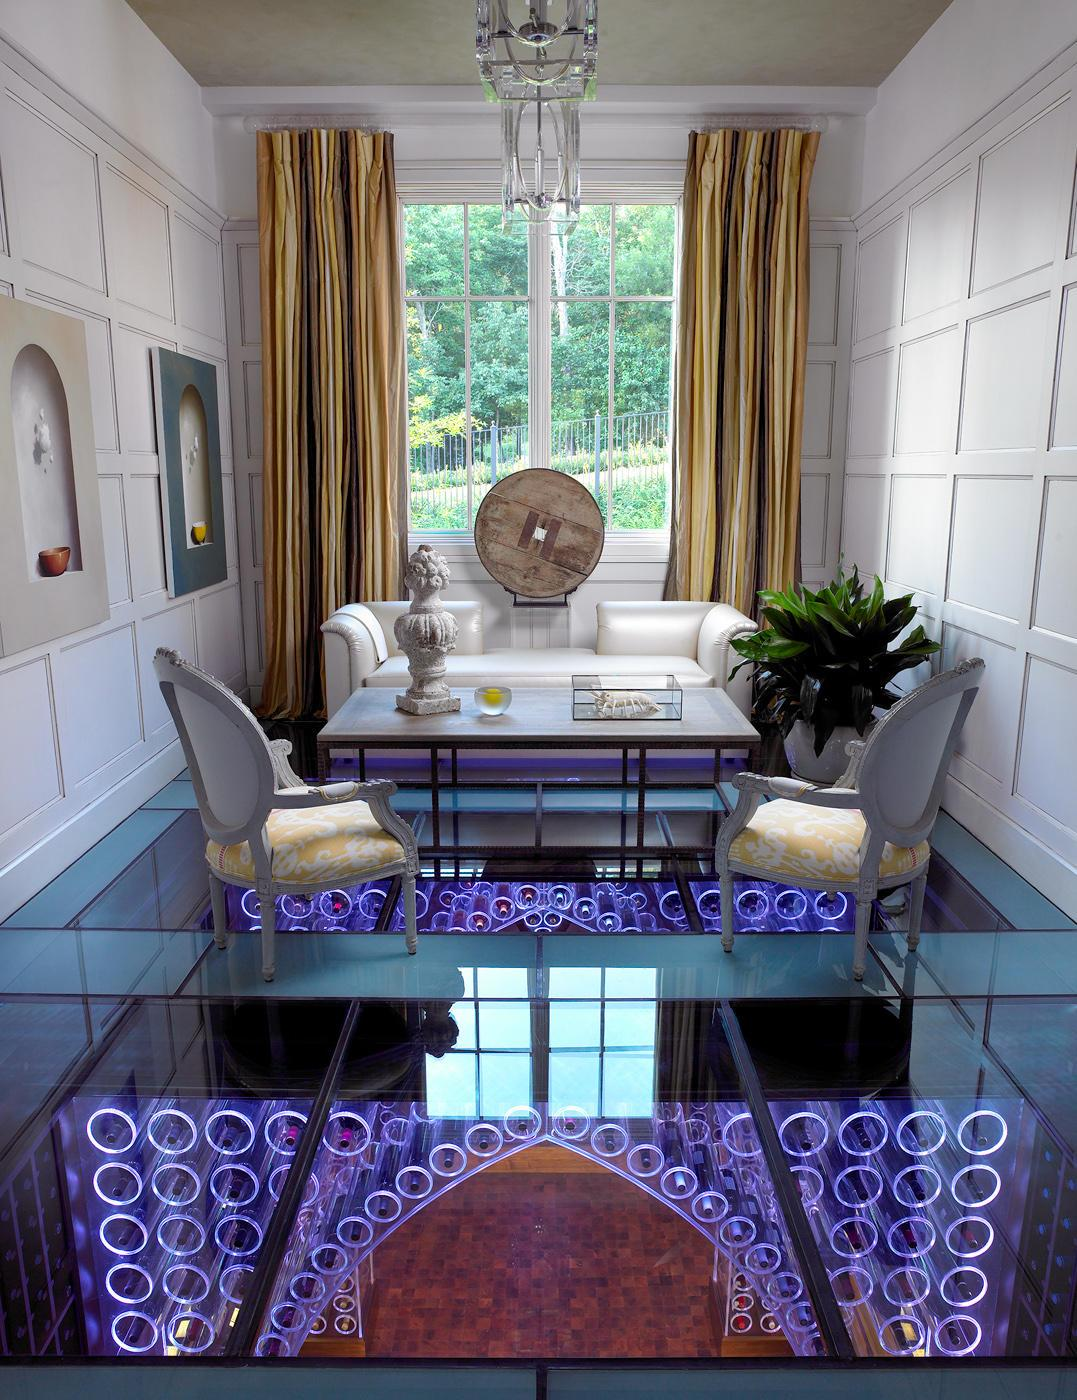 Underground House Designs Living Room on house floor design, home luxury house design, house study design, house entryway design, house kitchen design, house dining room, house driveway design, education room design, house room design ideas, tiny house on trailer design, house skylight design, house attached carport design, high-tech bed design, house living decor, house entrance hallway design, in house design, house studio design, house hall design, home room design, spaceship house design,